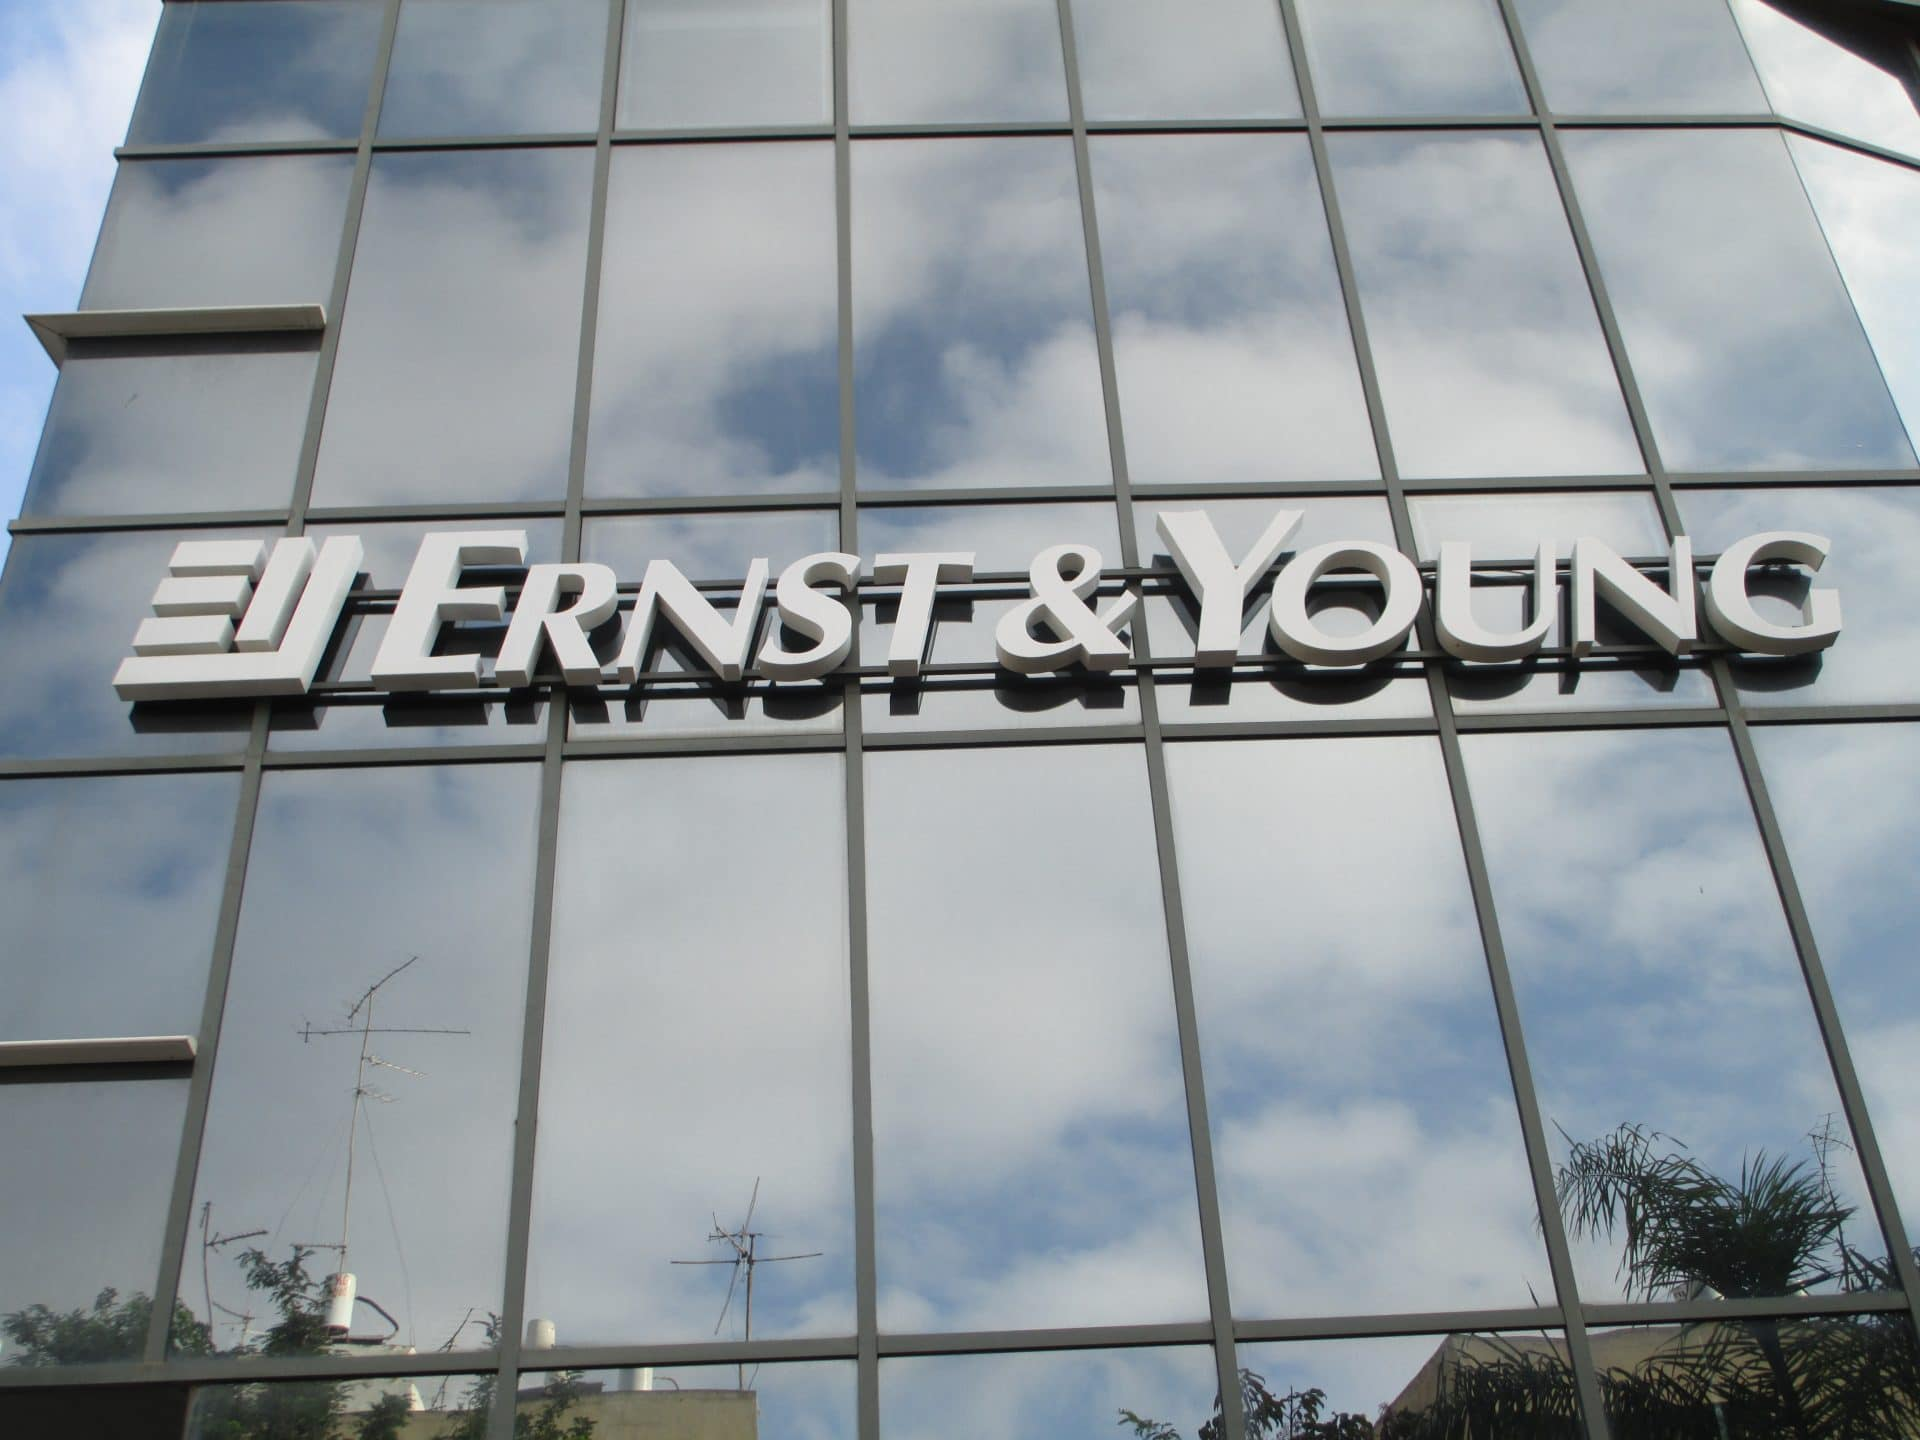 Immeuble Ernst & Young